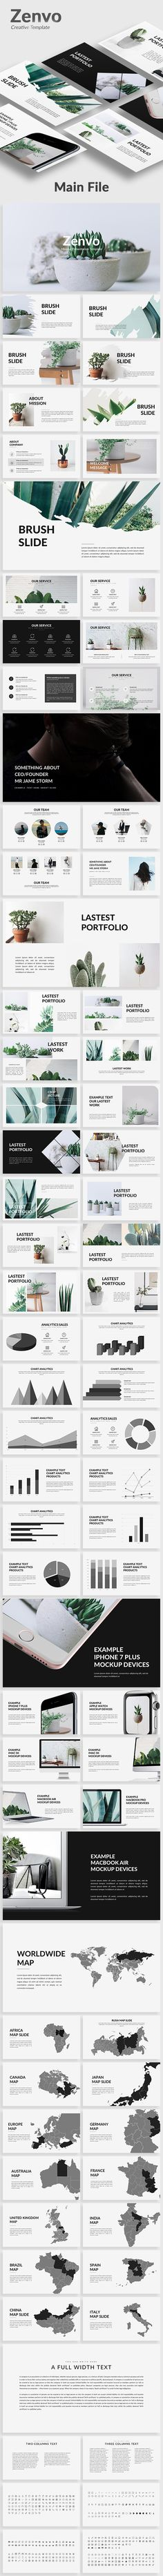 Zenvo - Google Slide Template - #Google Slides #Presentation #Templates Download here:  https://graphicriver.net/item/zenvo-google-slide-template/19533994?ref=alena994